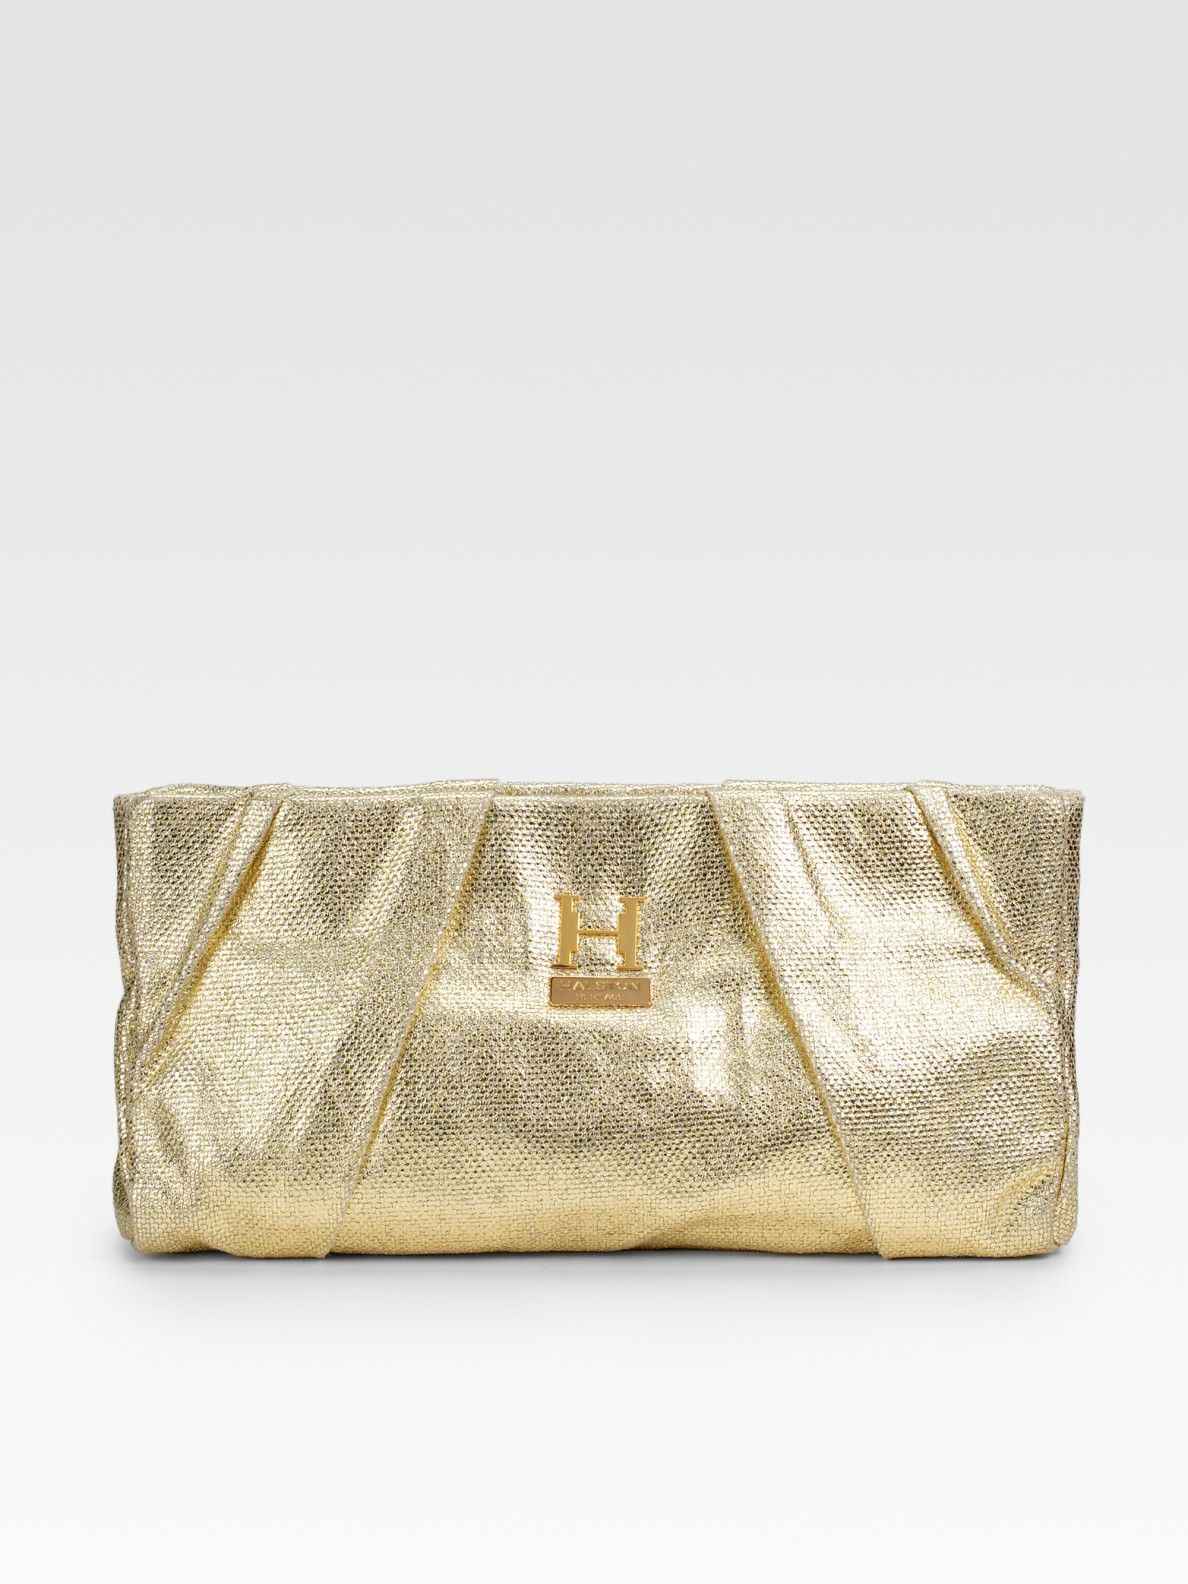 Lyst - Halston Alice Pleated Metallic Canvas Big Clutch in Metallic c7dbc54765d23